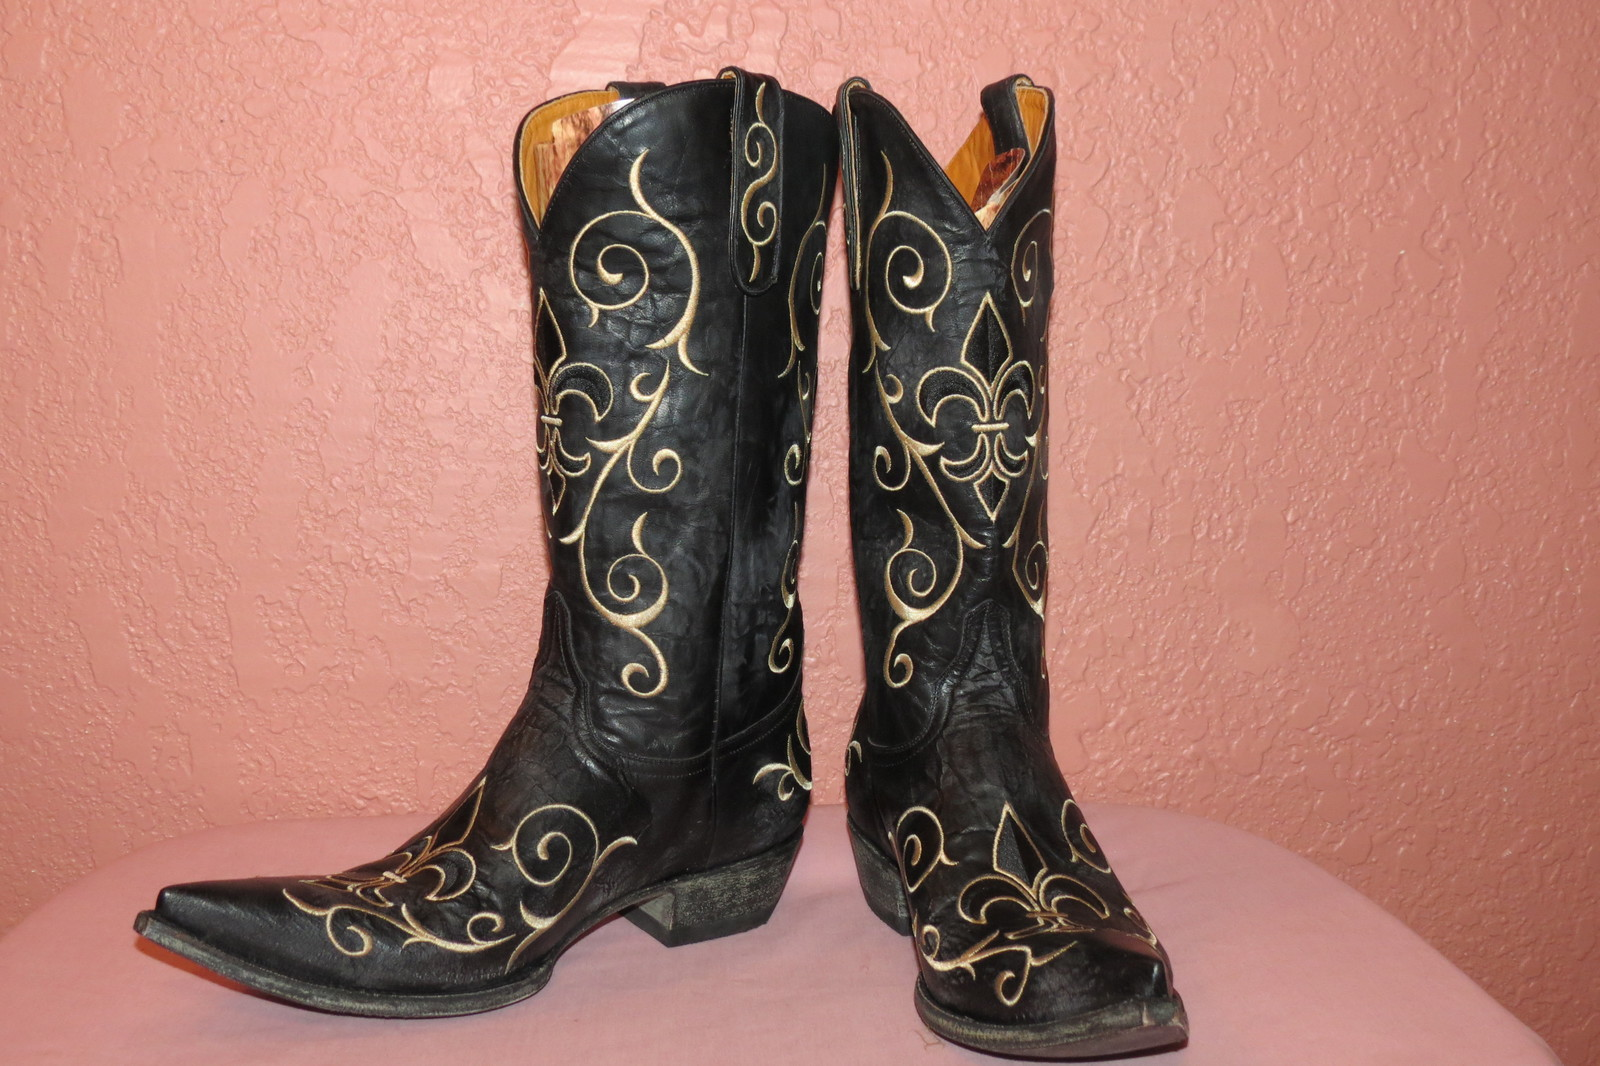 Ladies NIB Old Gringo Size 10 1/2 B Evelyn Boots in Black